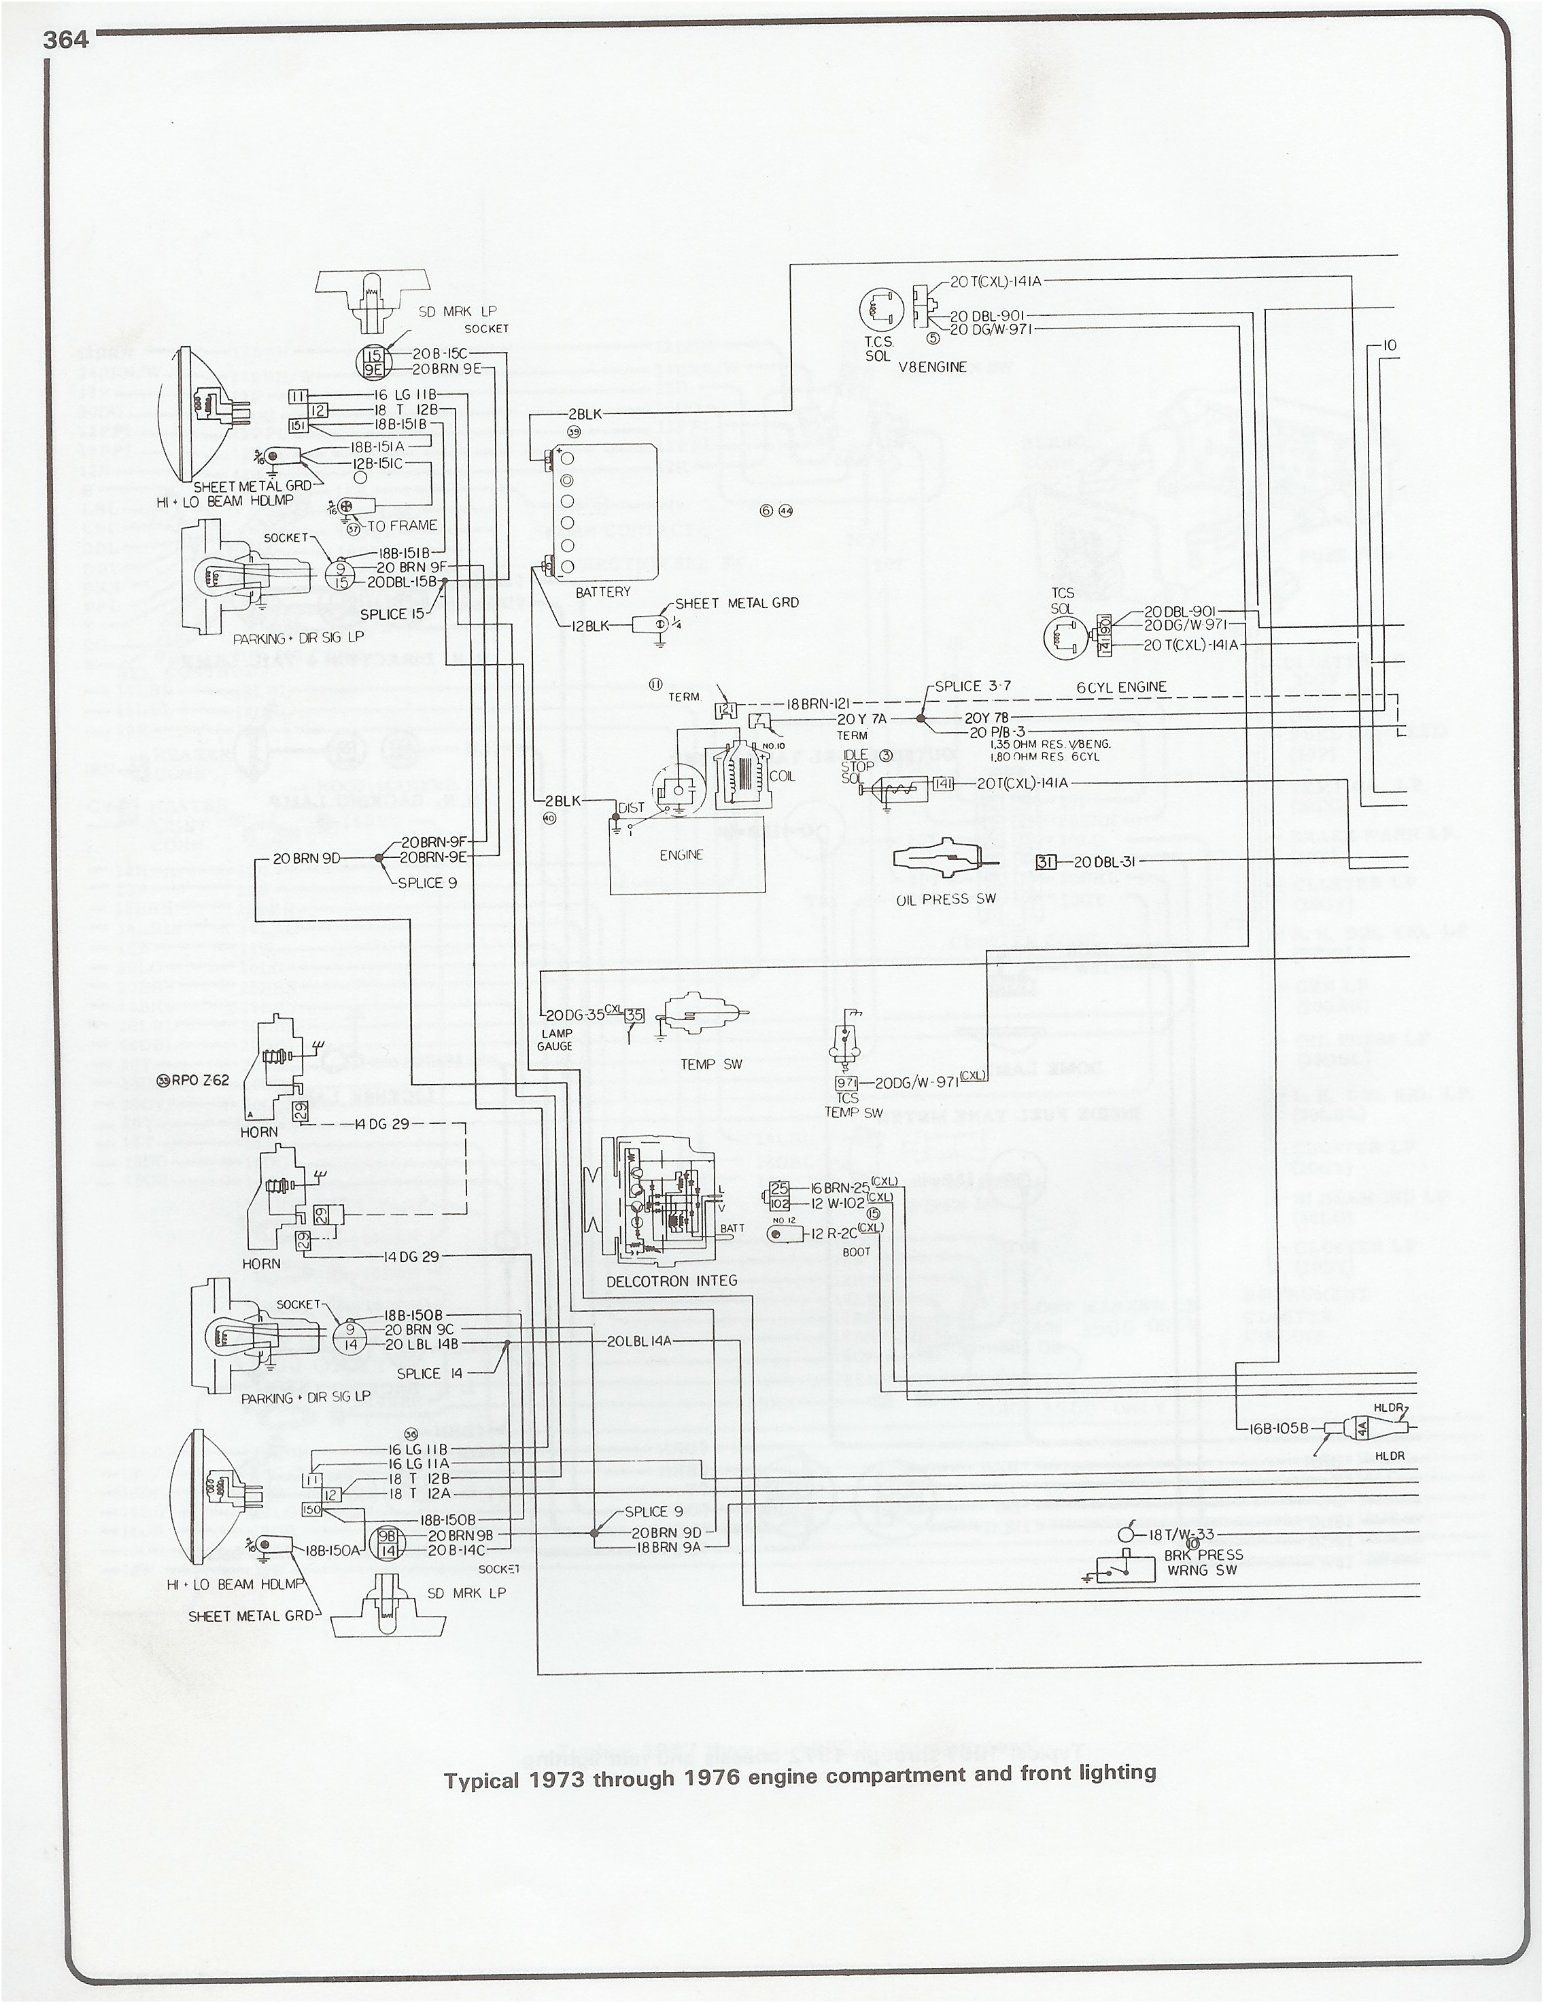 hight resolution of wiring diagram 1973 1976 chevy pickup chevy wiring diagram 1975 chevy nova wiring diagram 1975 chevy wire diagram